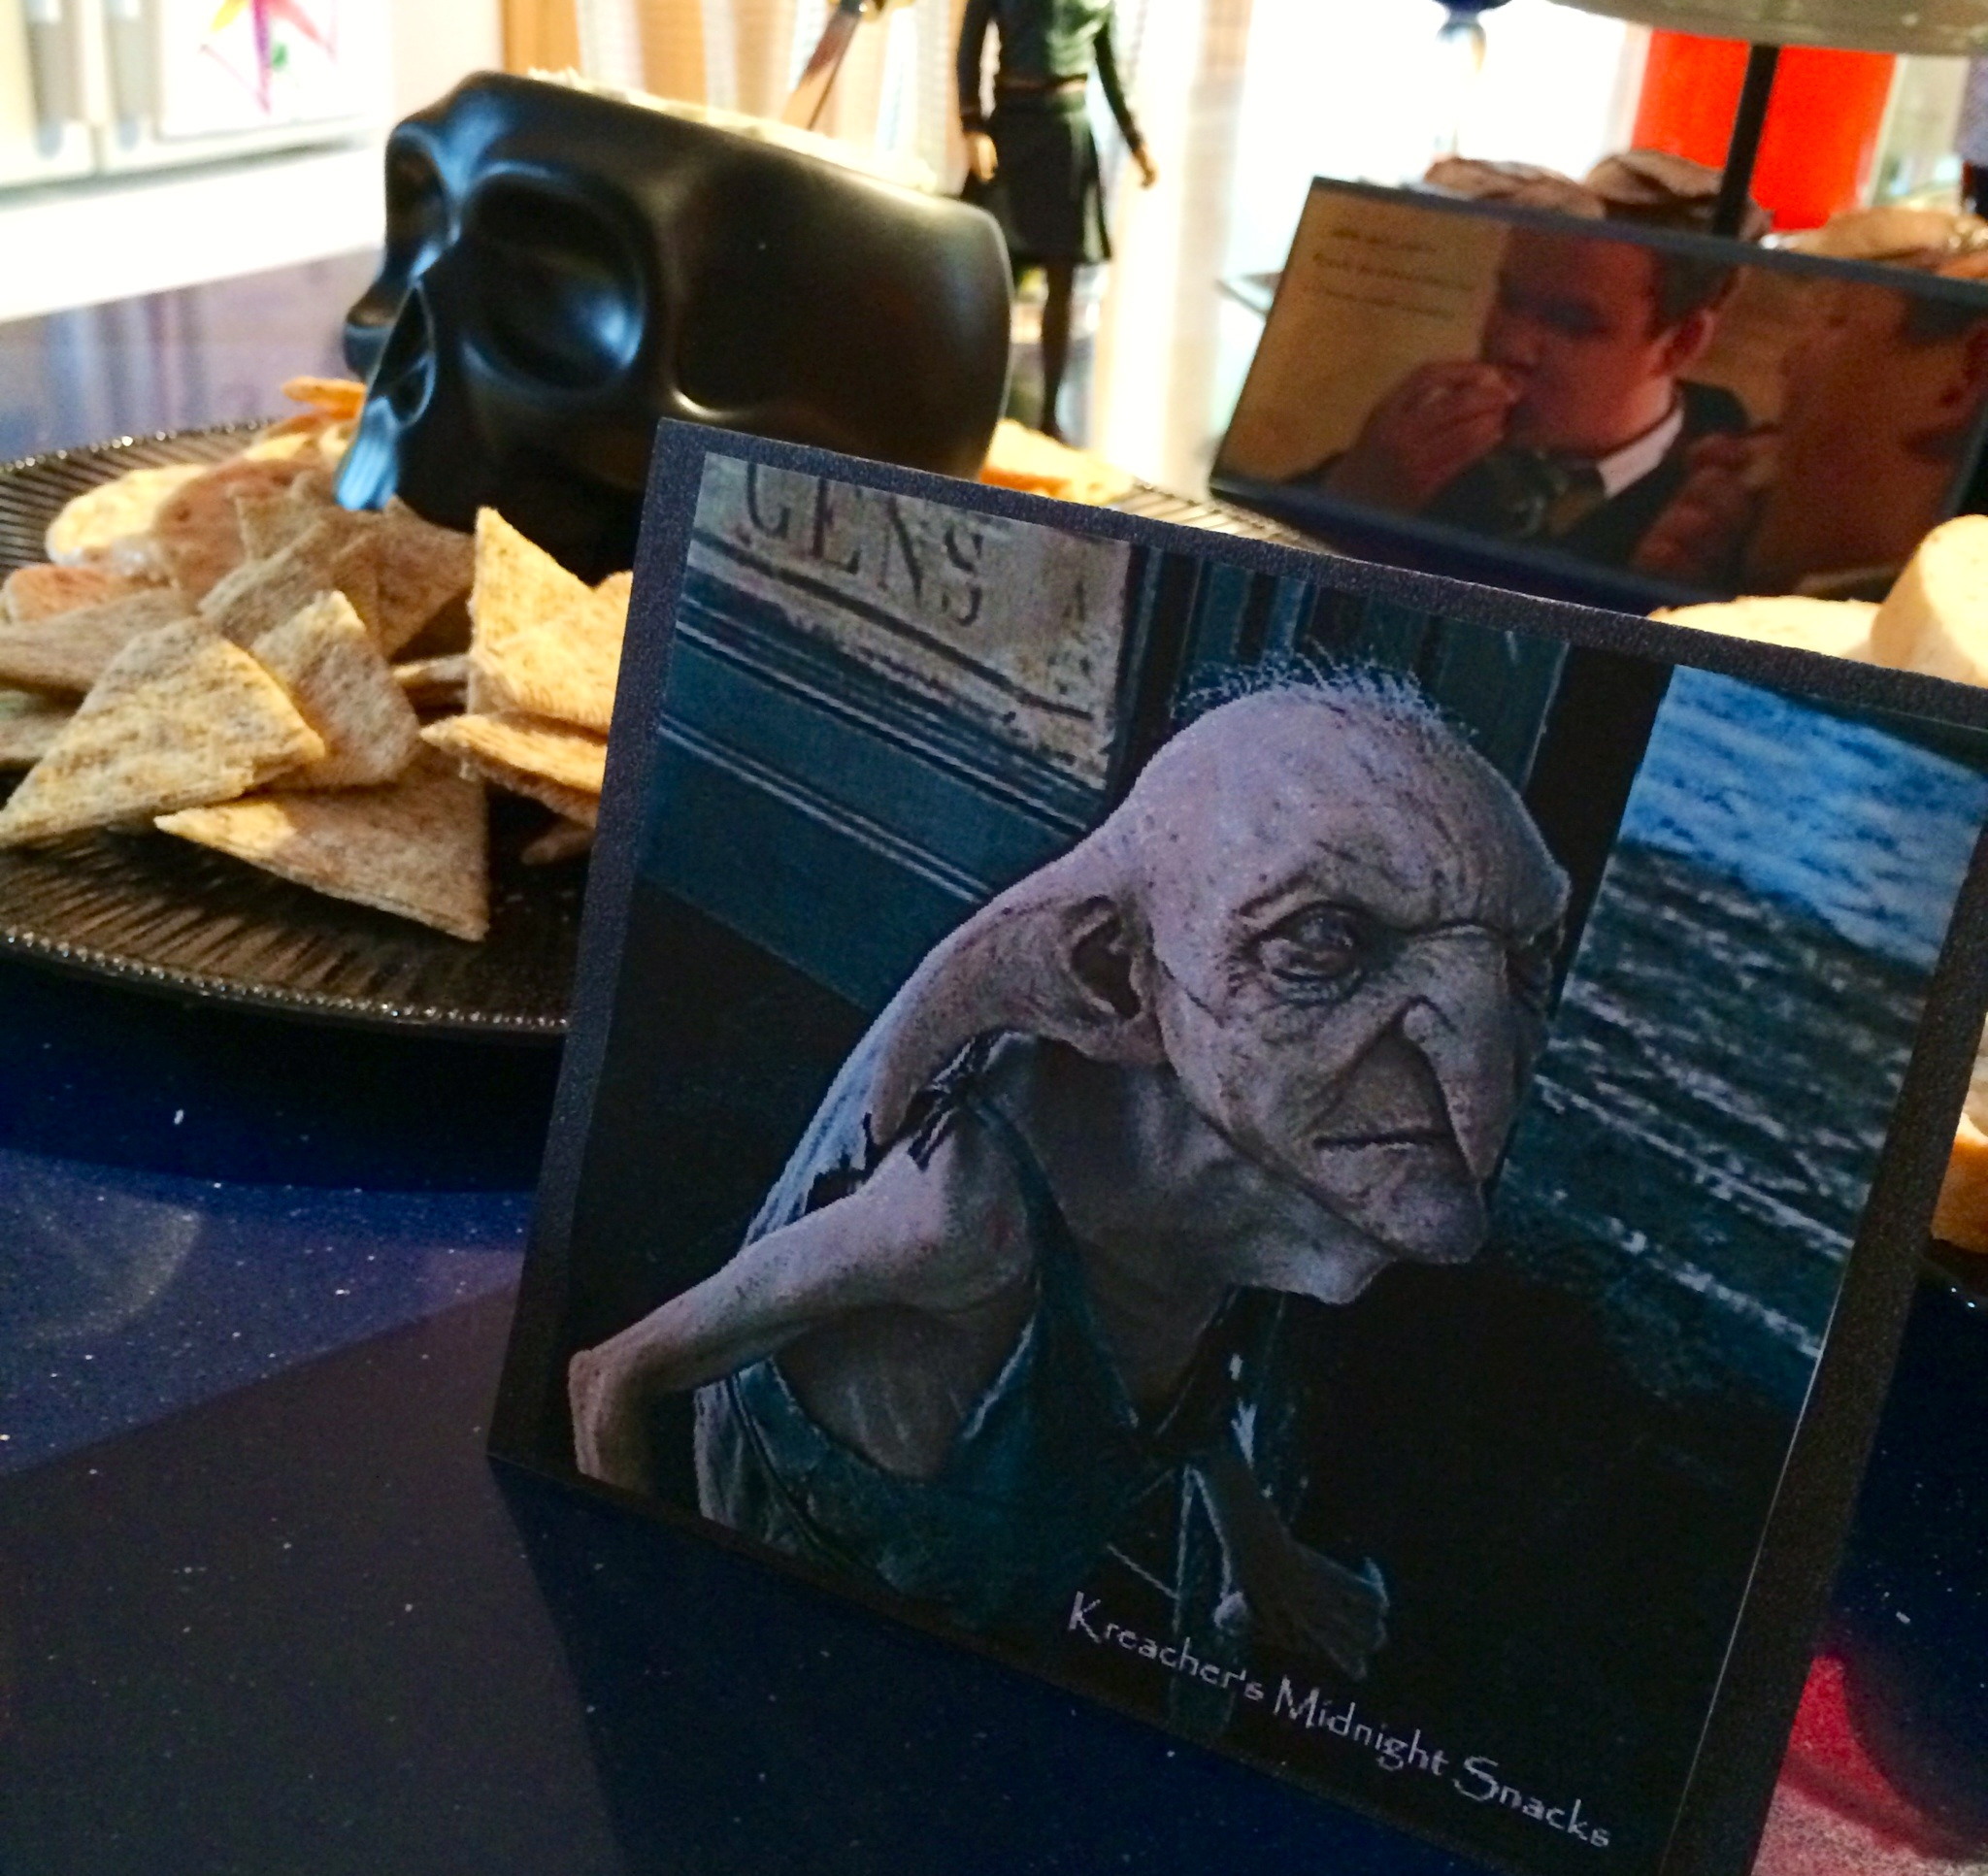 Kreacher the house elf prepared a feast for us muggles. He was not happy about it.